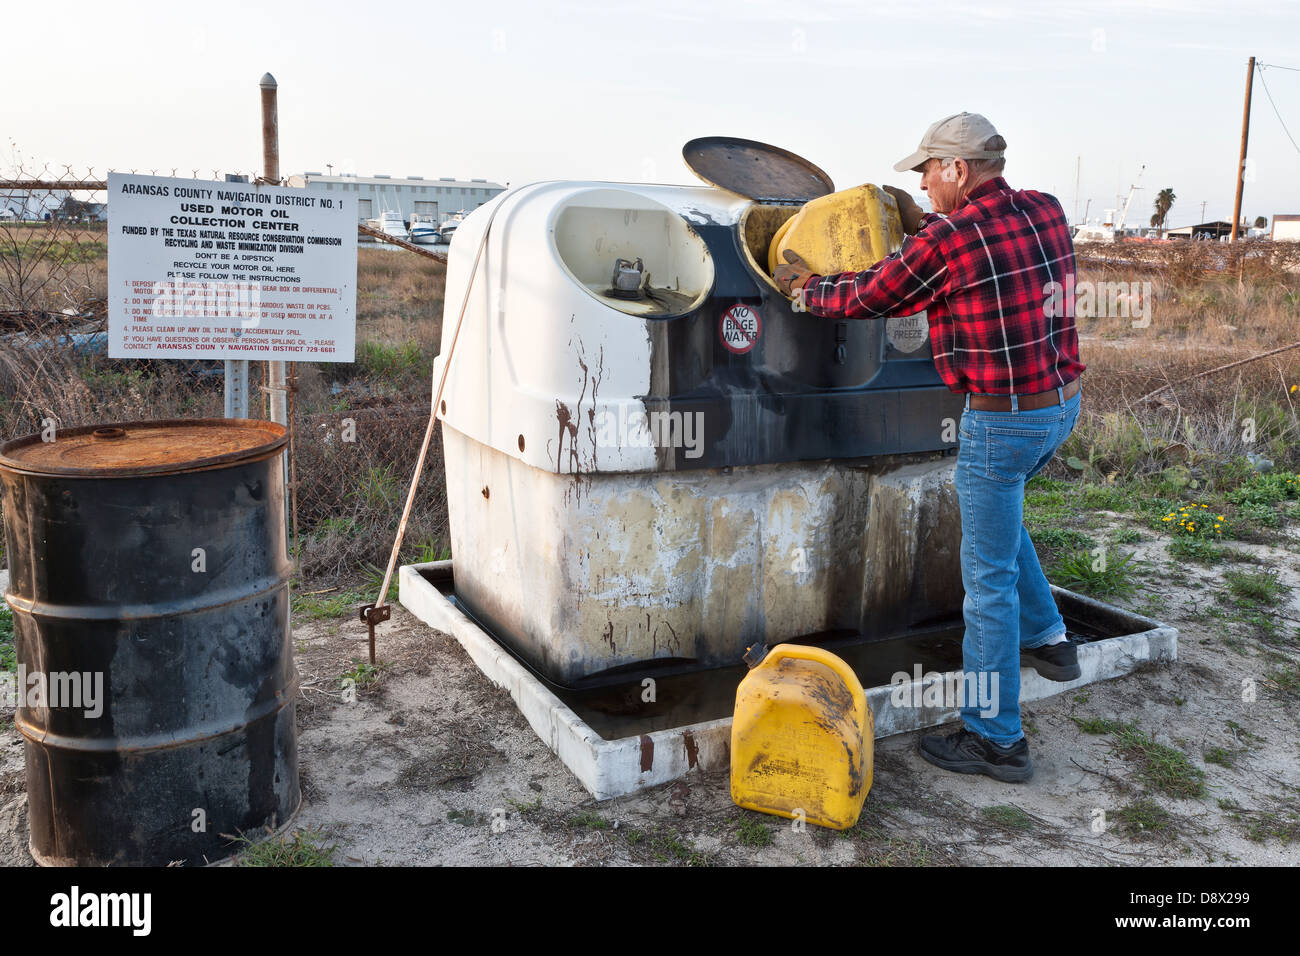 Boat owner recycling used motor oil. - Stock Image